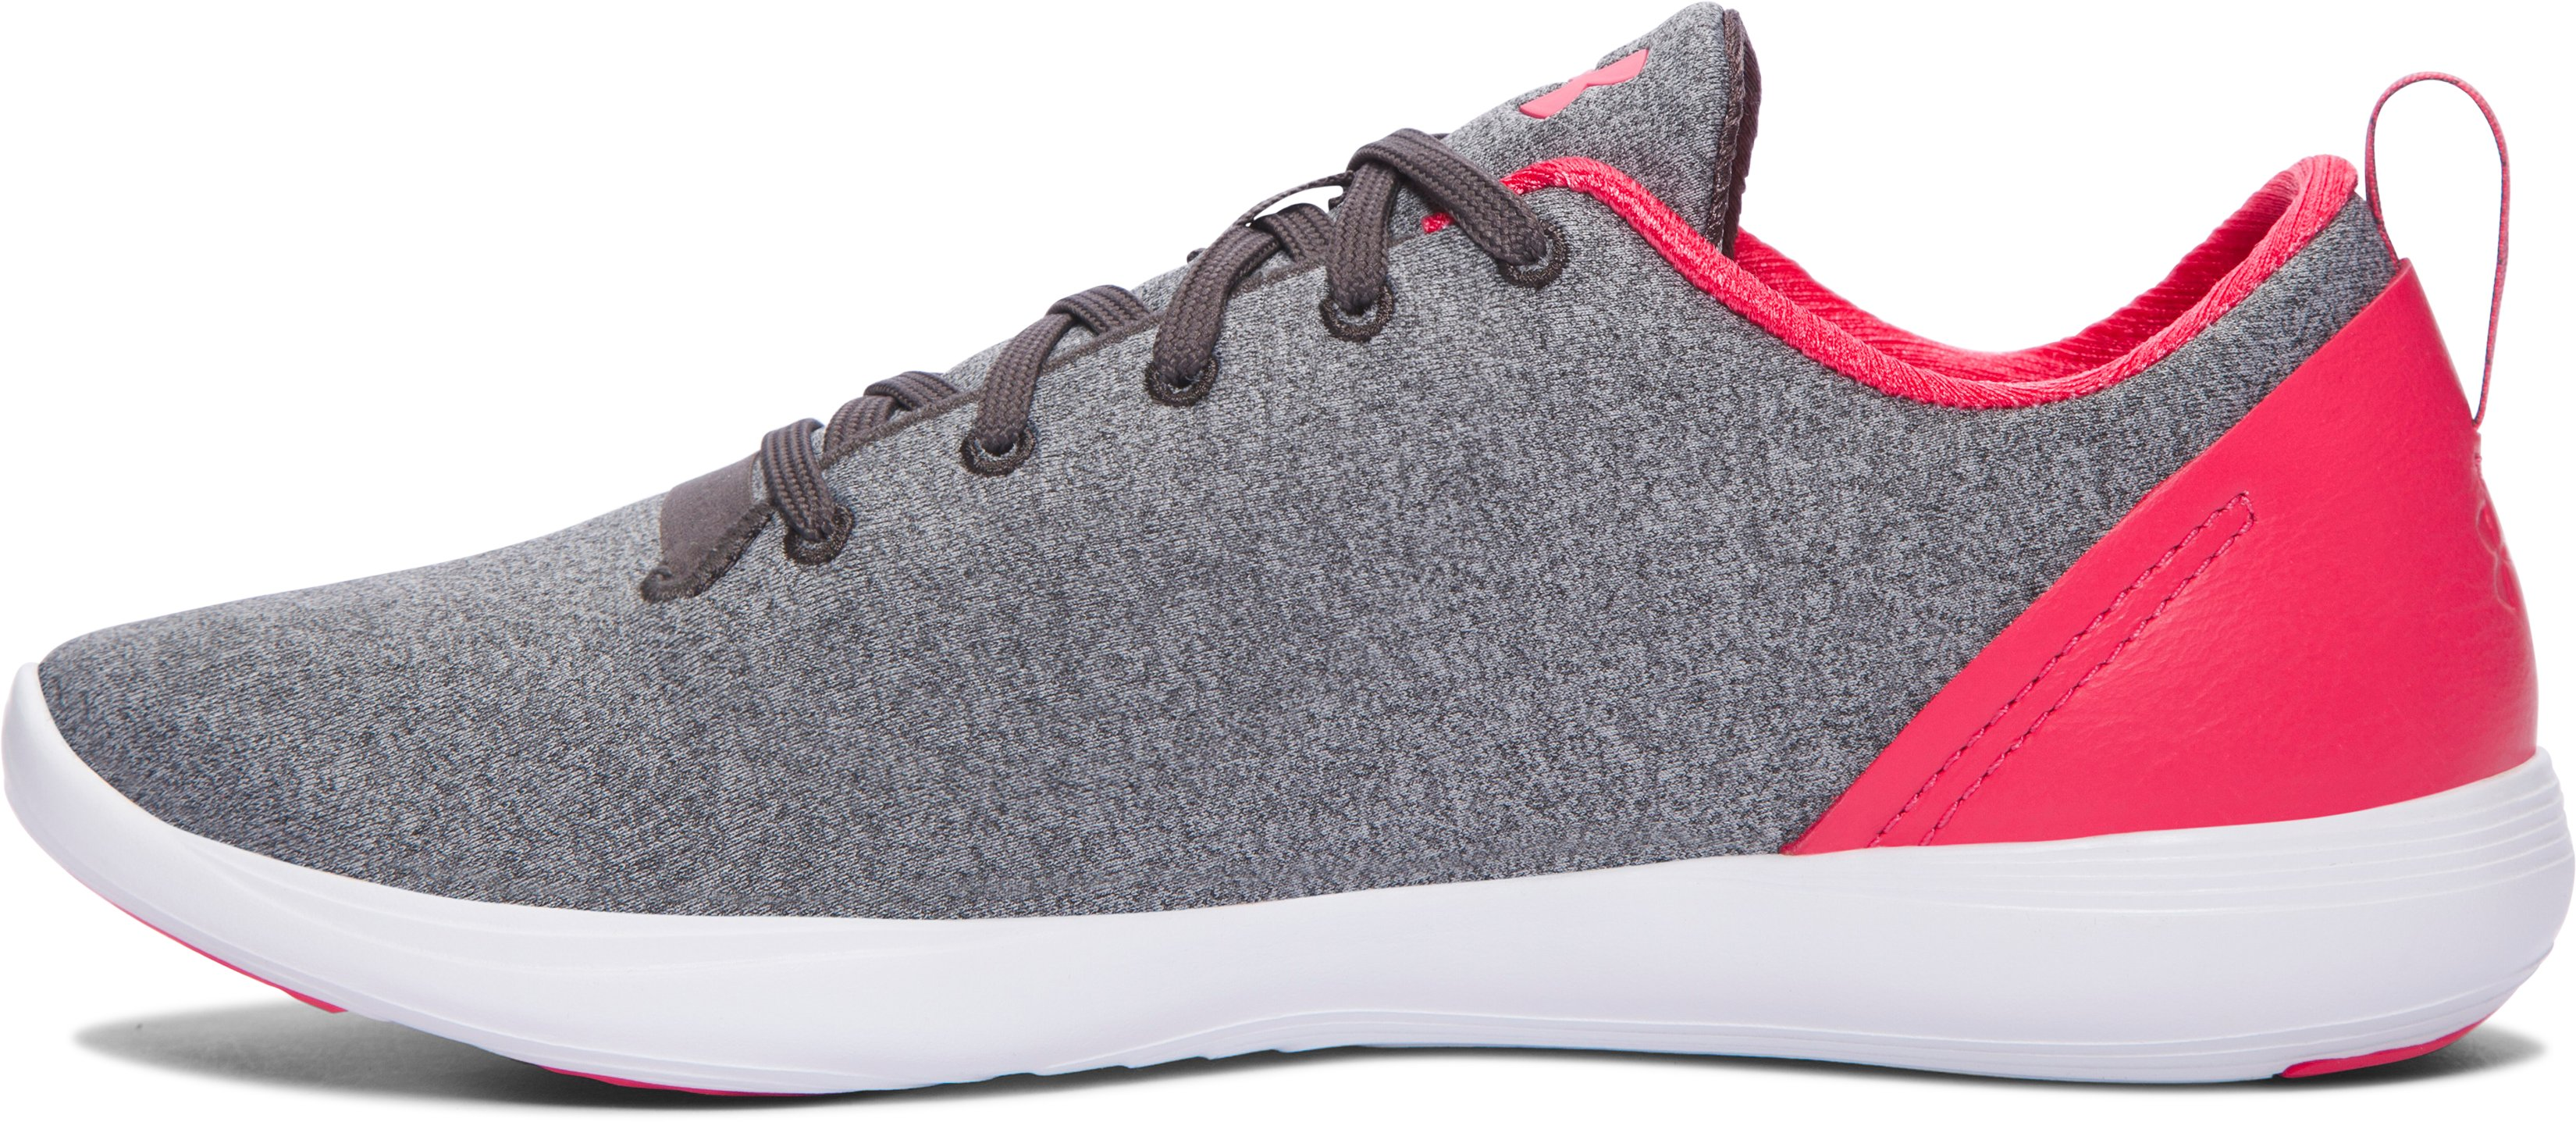 Women's UA Street Precision Sport Low Lifestyle Shoes, Charcoal, undefined